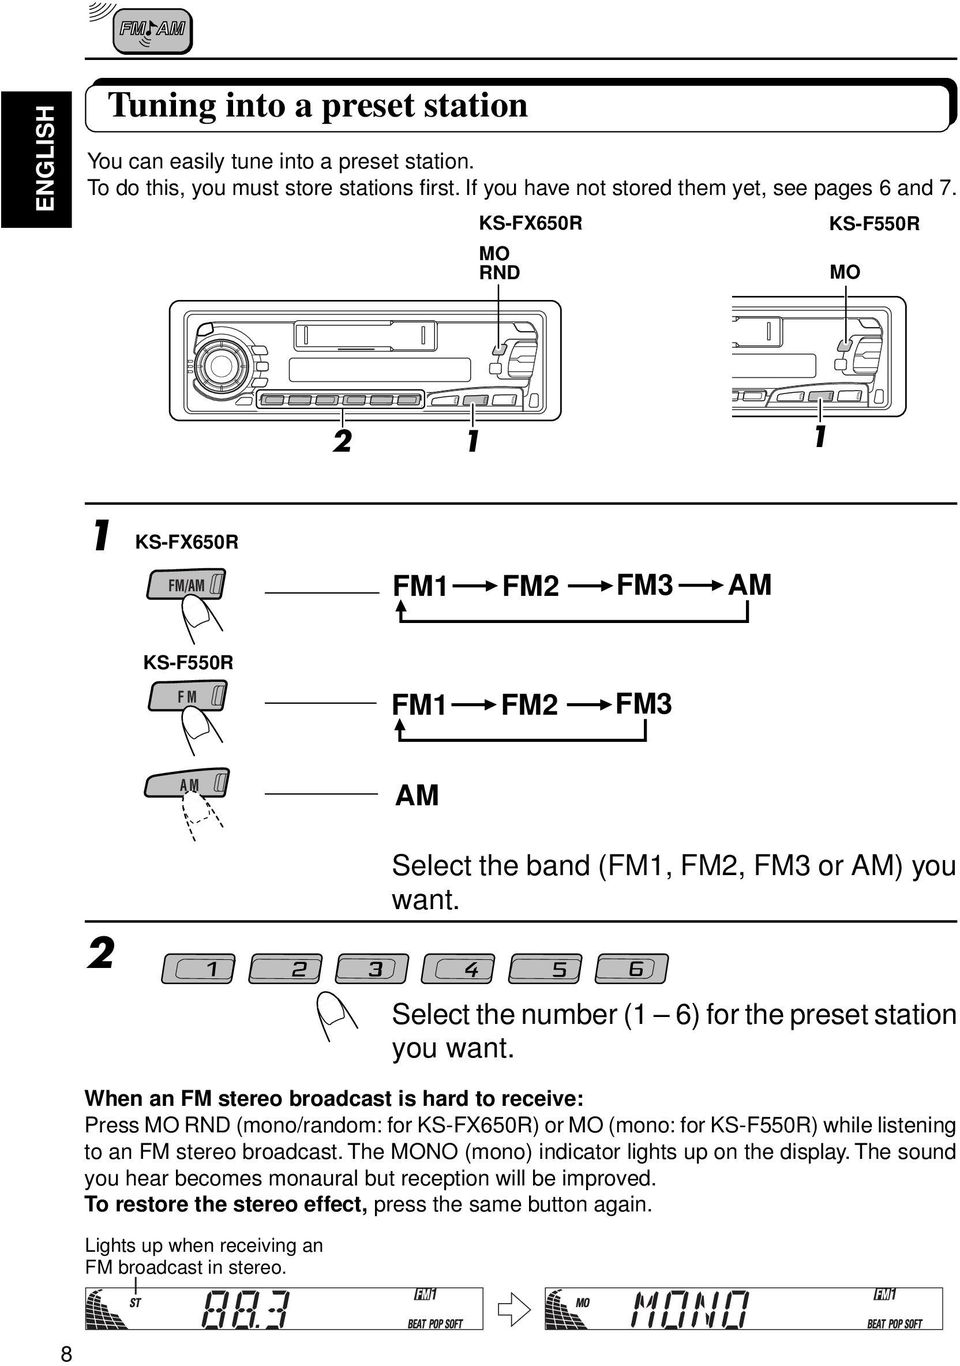 When an FM stereo broadcast is hard to receive: Press MO RND (mono/random: for KS-FX650R) or MO (mono: for KS-F550R) while listening to an FM stereo broadcast.